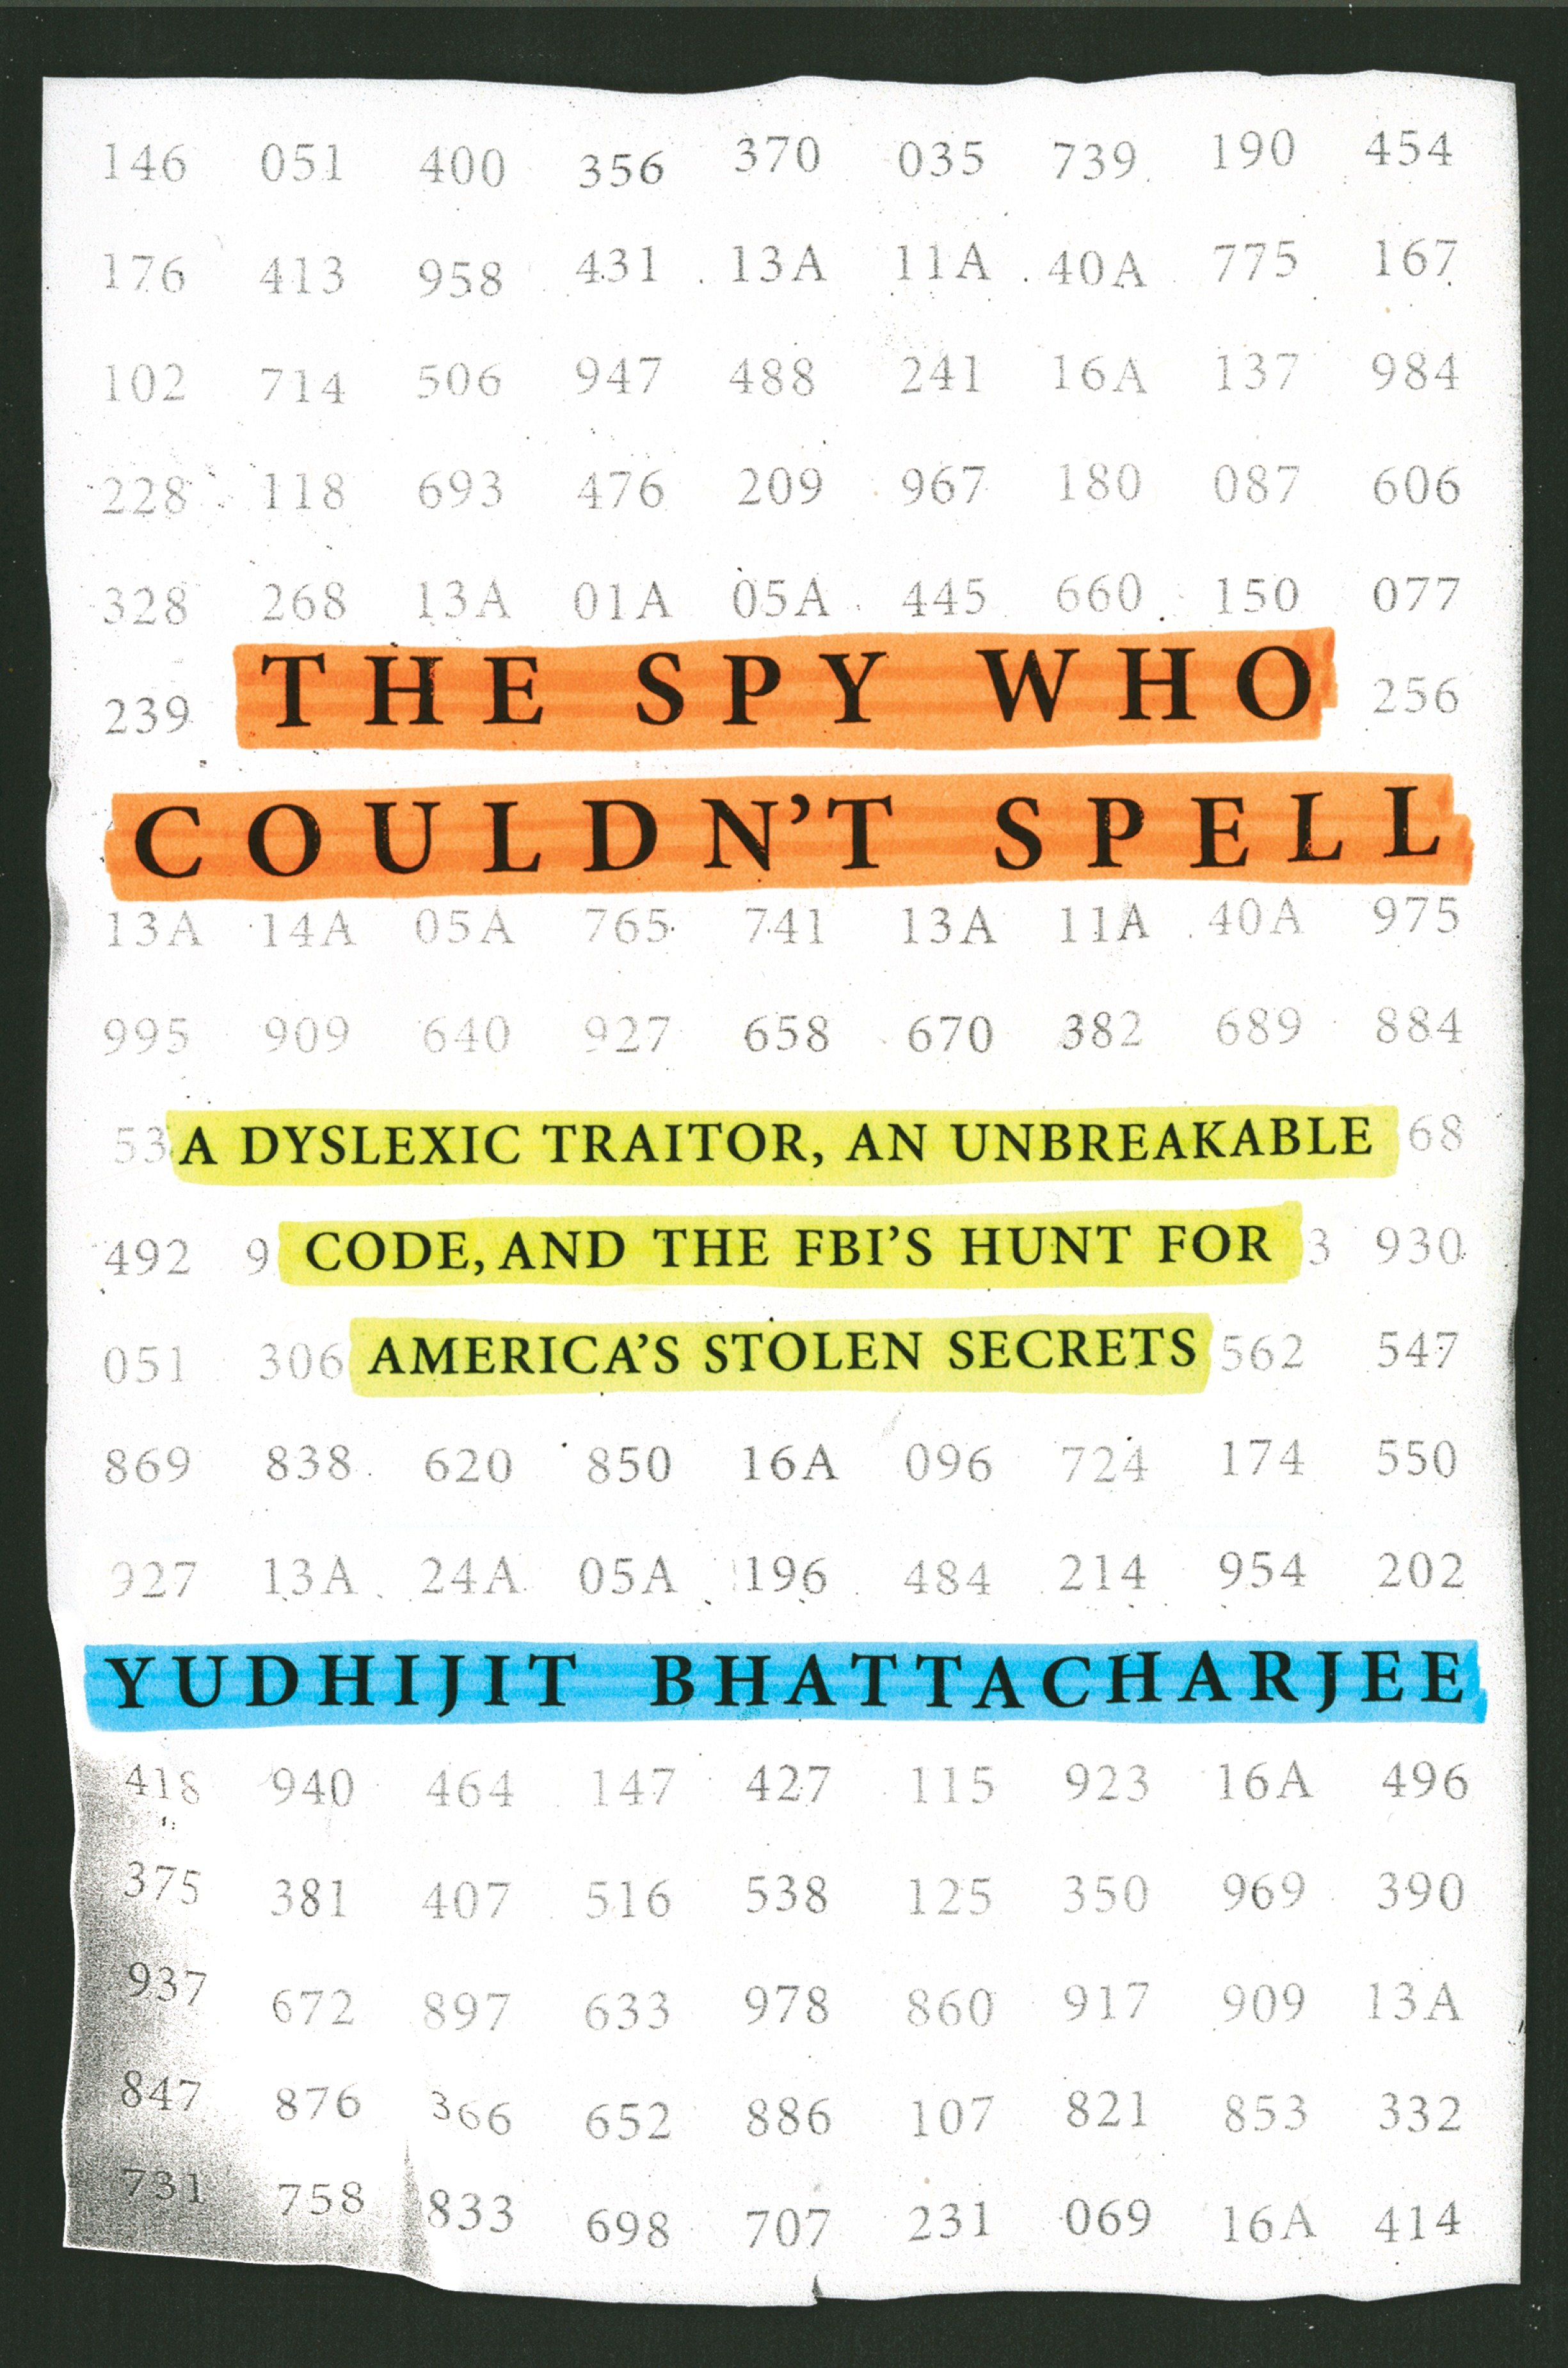 The Spy Who Couldn't Spell A Dyslexic Traitor, an Unbreakable Code, and the FBI's Hunt for America's Stolen Secrets